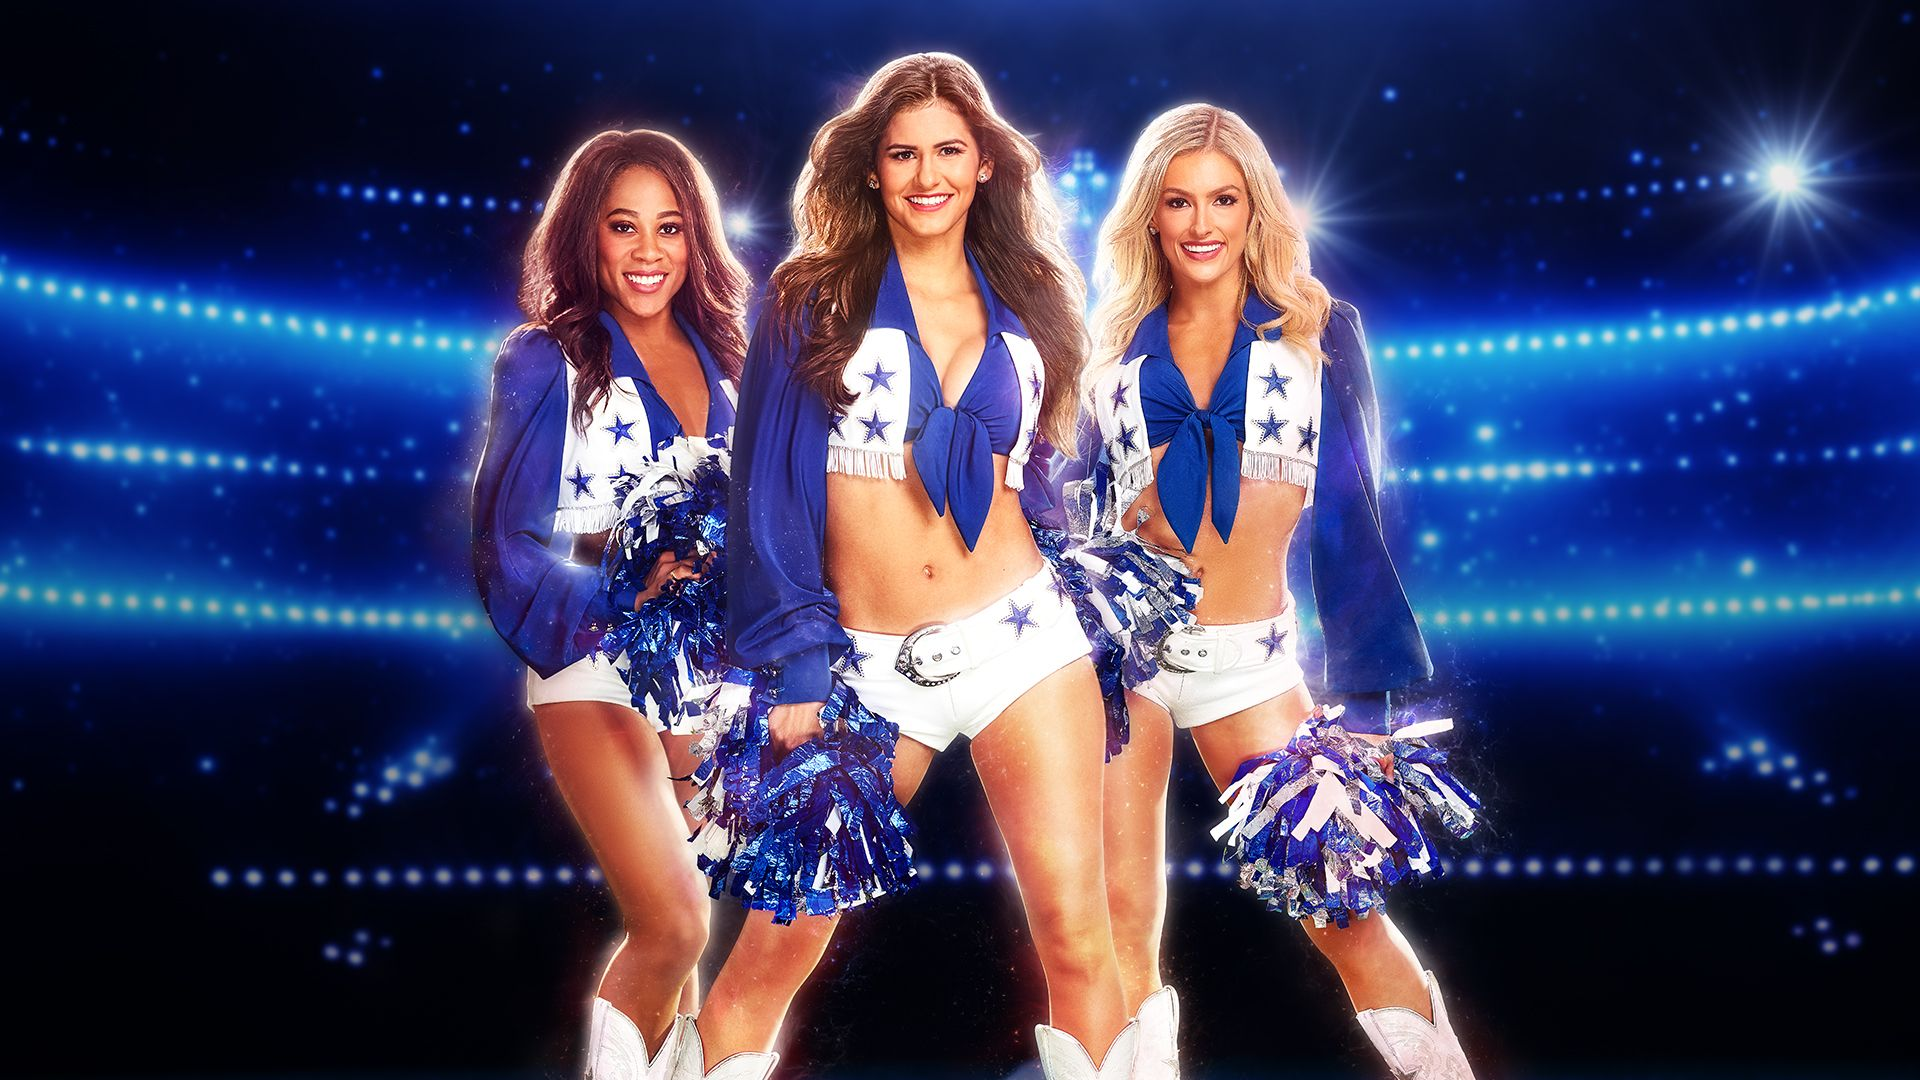 Dallas Cowboys Cheerleaders: Making The Team - Watch Full Episodes | CMT